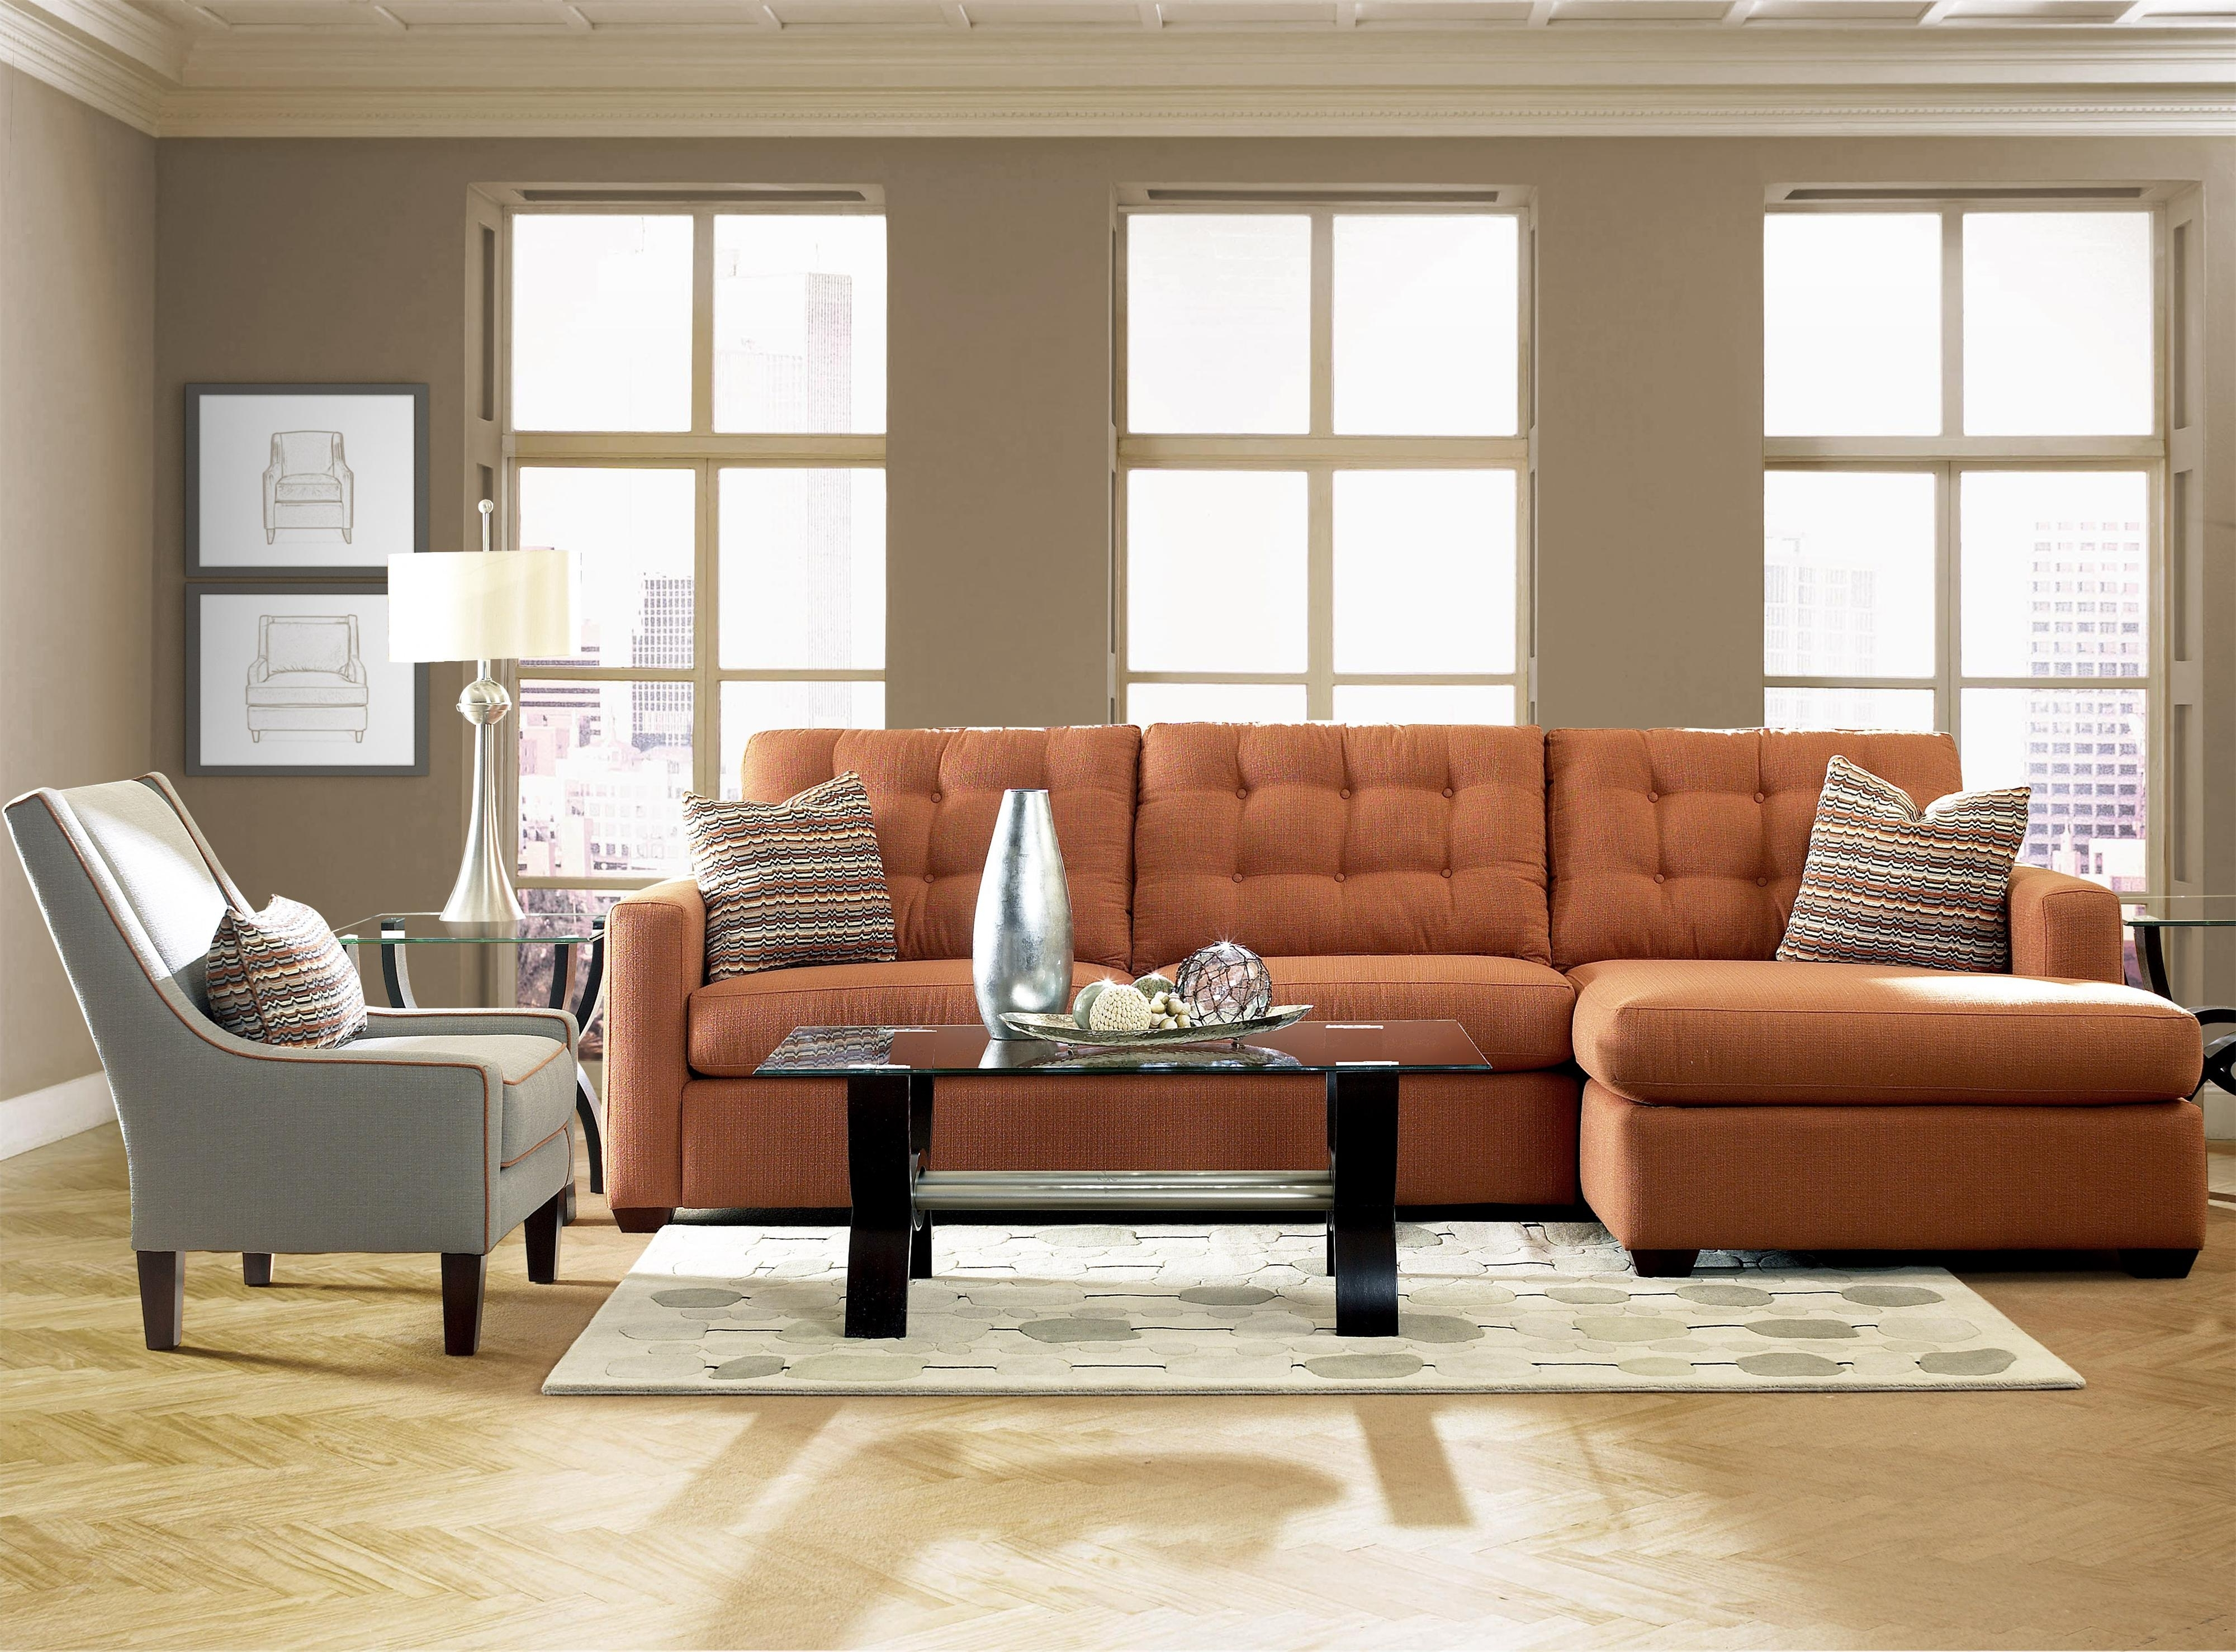 Living Room Chaise Lounge Chairs Custom Living Room Chaise Lounge Pertaining To 2017 Chaise Lounge Chairs For Small Spaces (View 13 of 15)